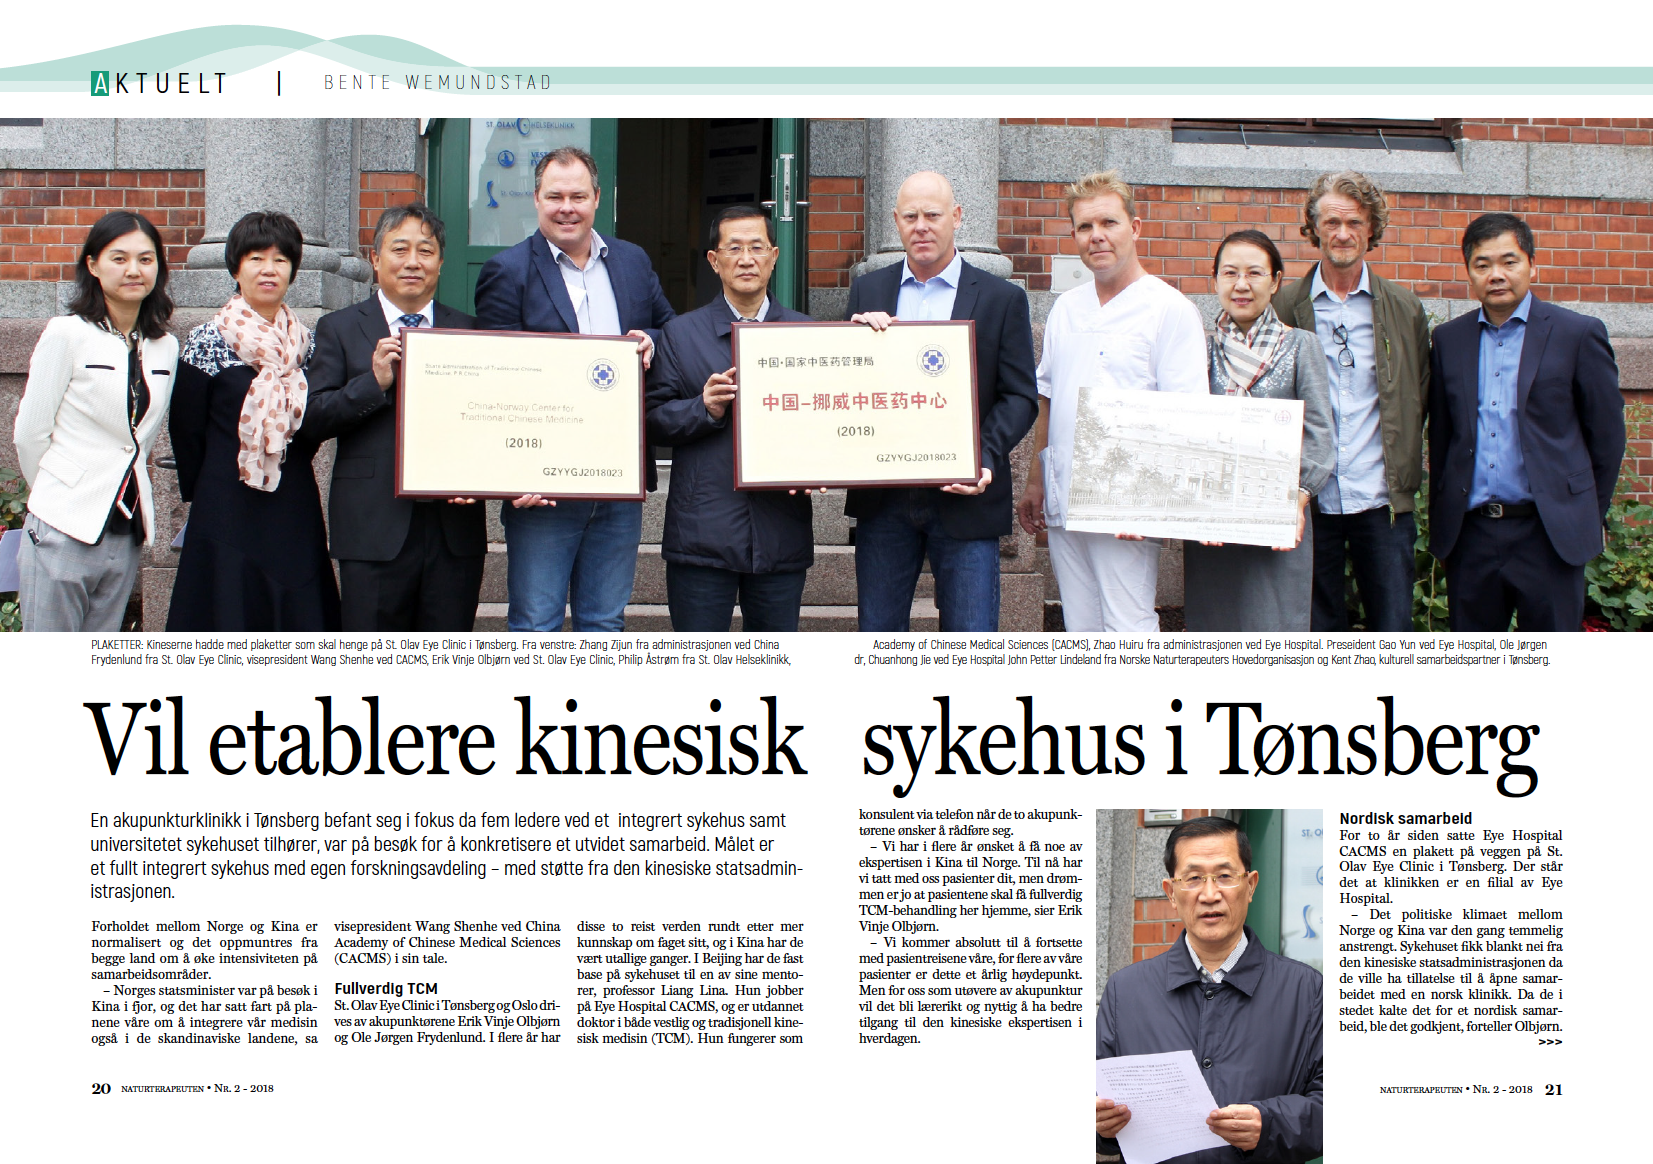 Naturterapeuten: Chinese people want to establish TCM hospitals in Norway